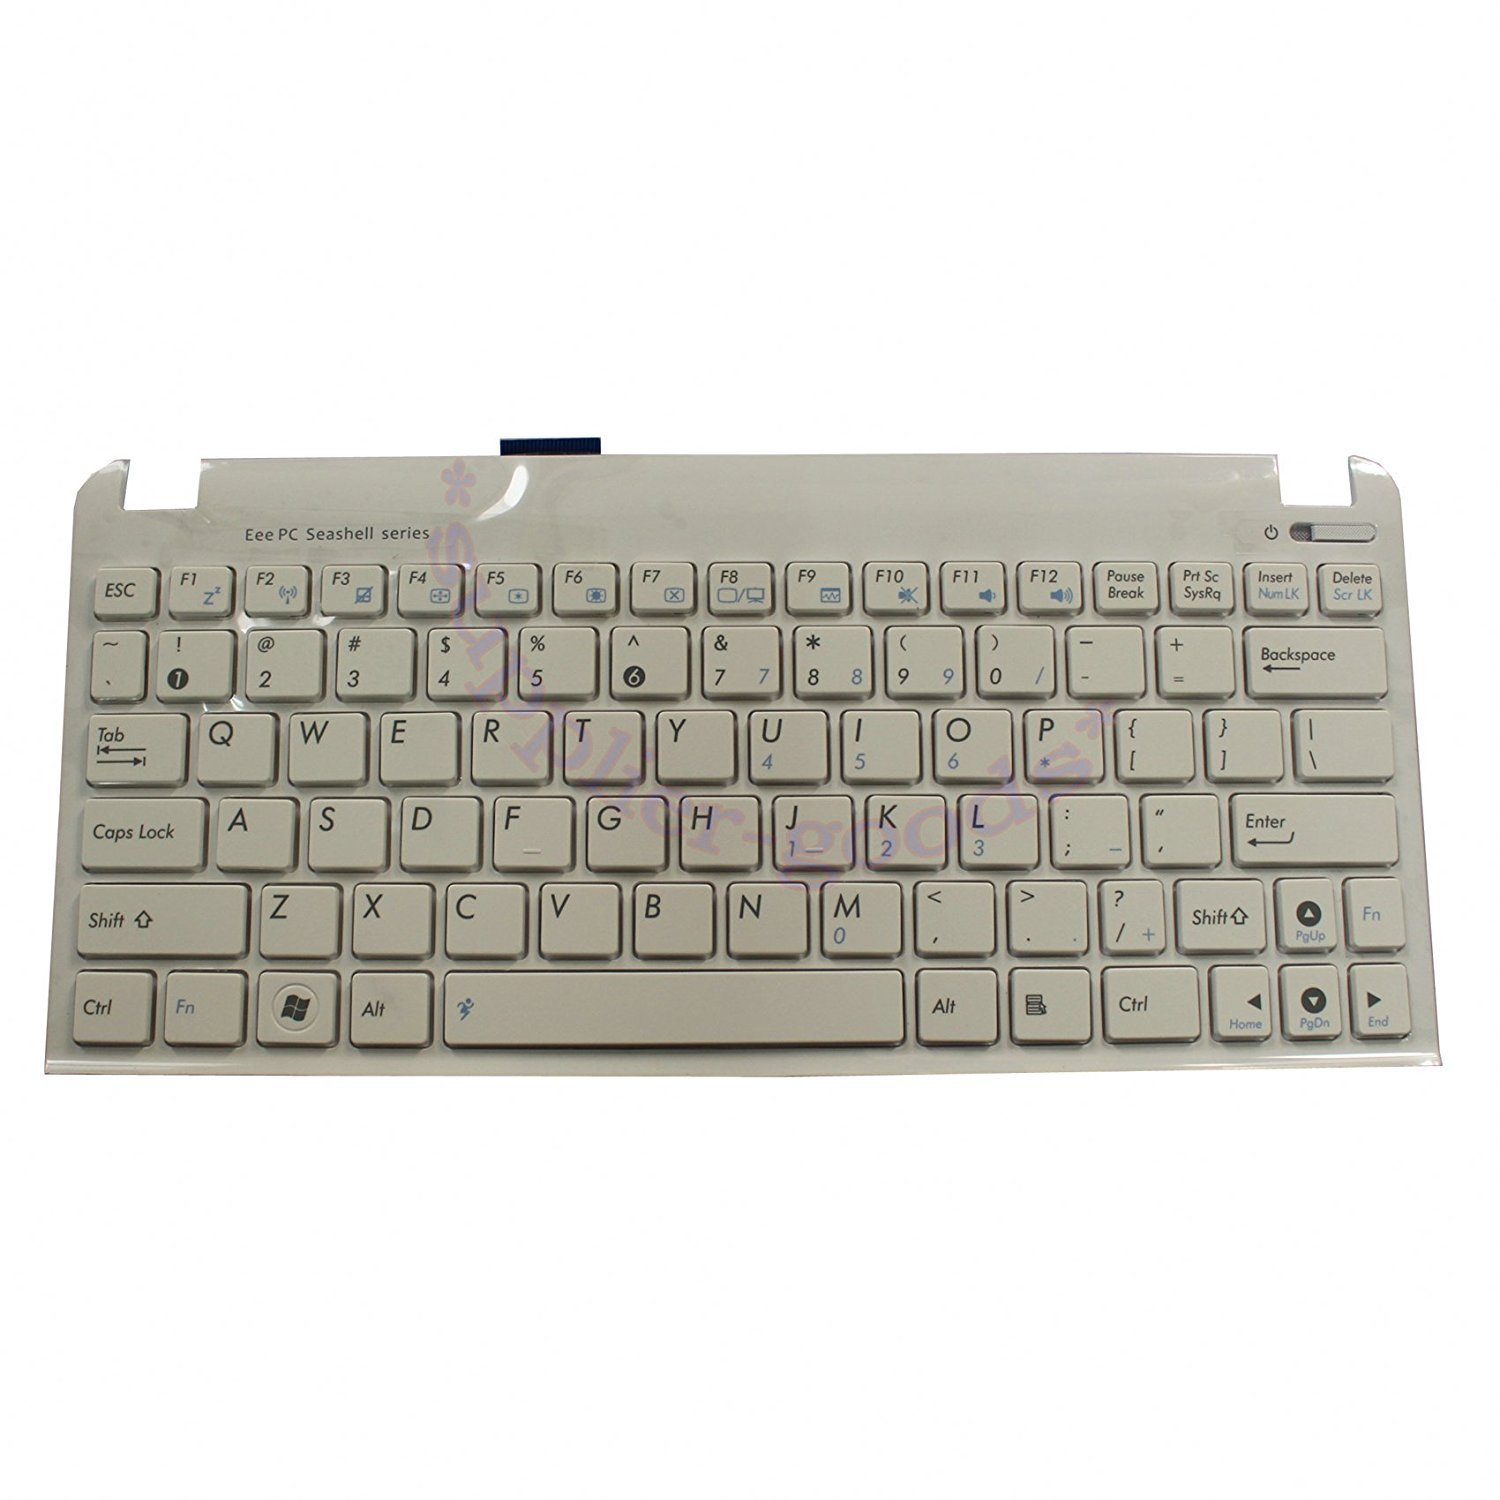 YEECHUN White US Keyboard for Asus Eee PC 1015P 1015PN 1015PE 1015PEM 1015PB 1015tx 1025C 1025CE 1016 1016P 1016PG 1016PT Series New Notebook Replacement Accessories